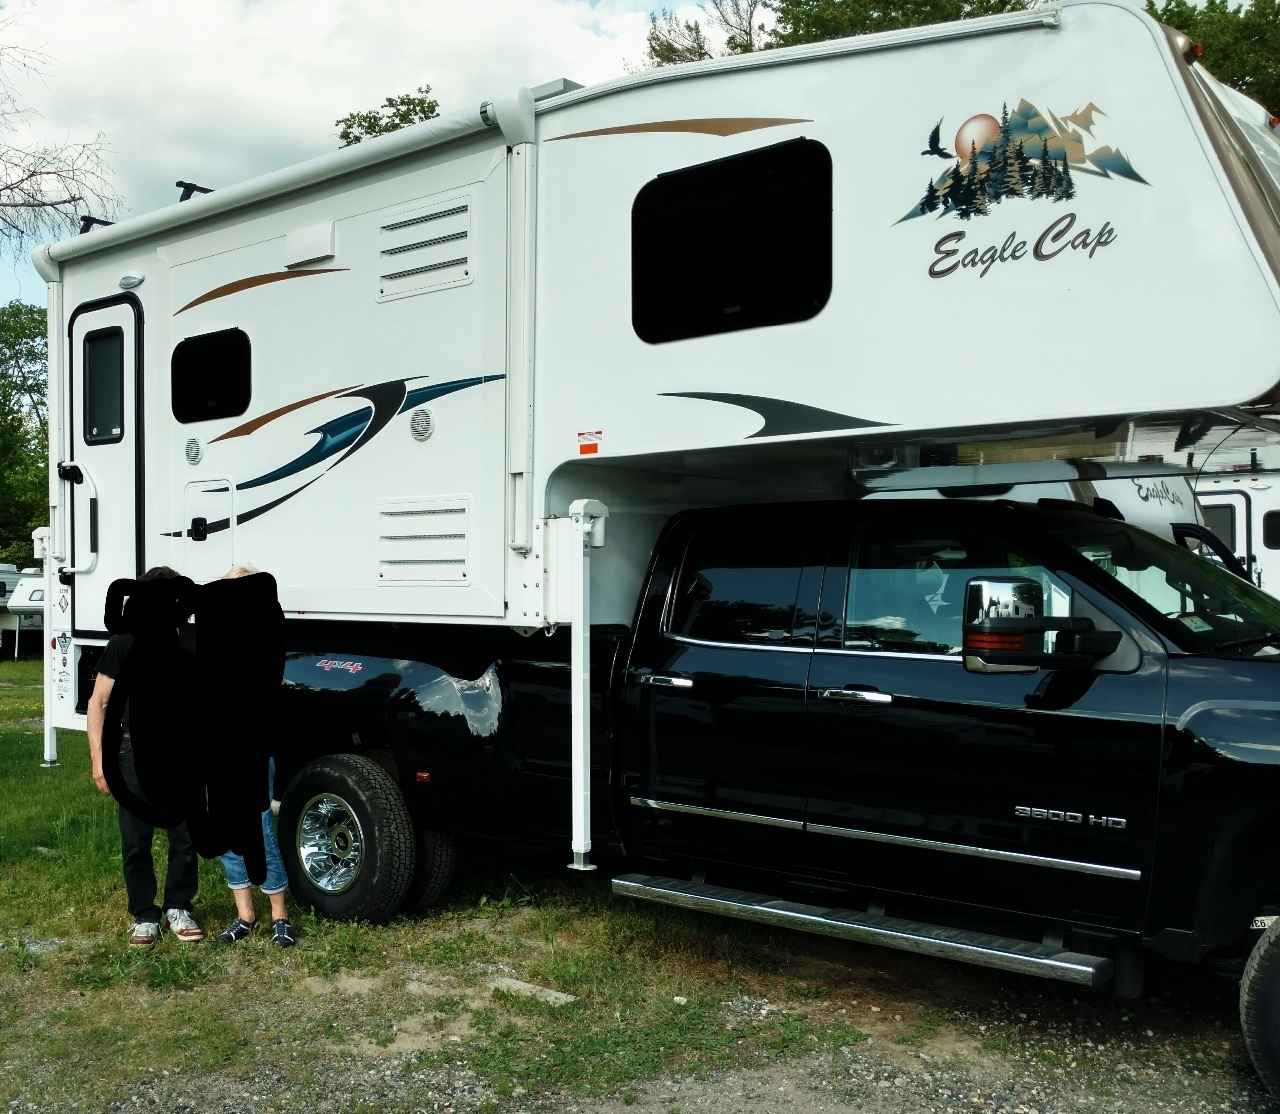 2016 Used Adventurer Lp Eagle Cap 1200 Truck Camper In